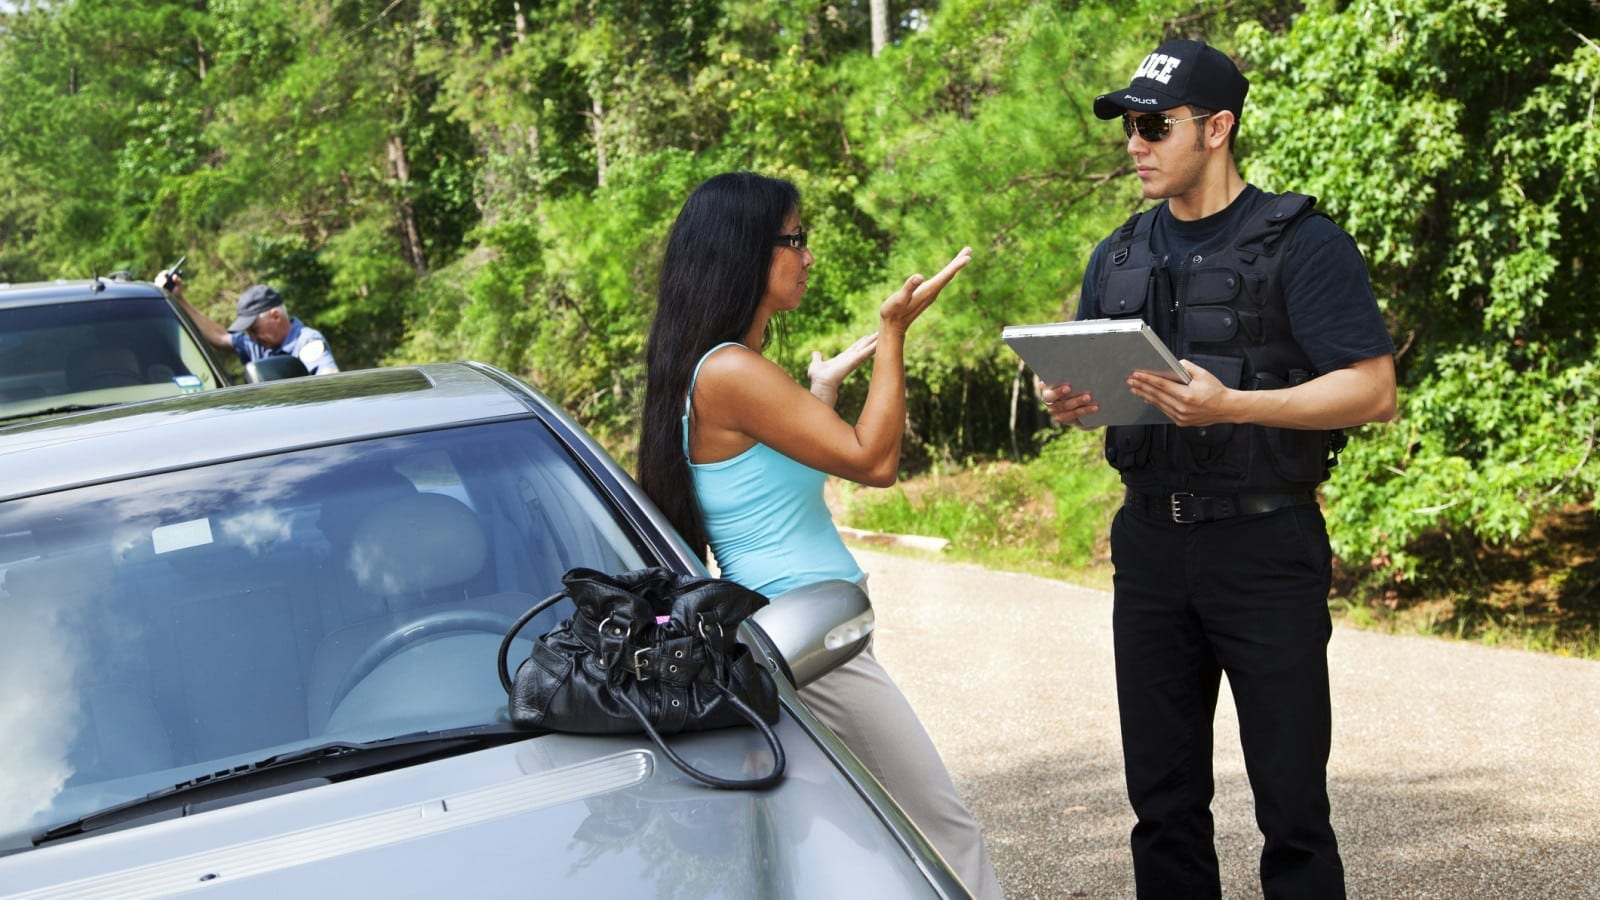 Police Officer Completing Car Accident Report Stock Photo